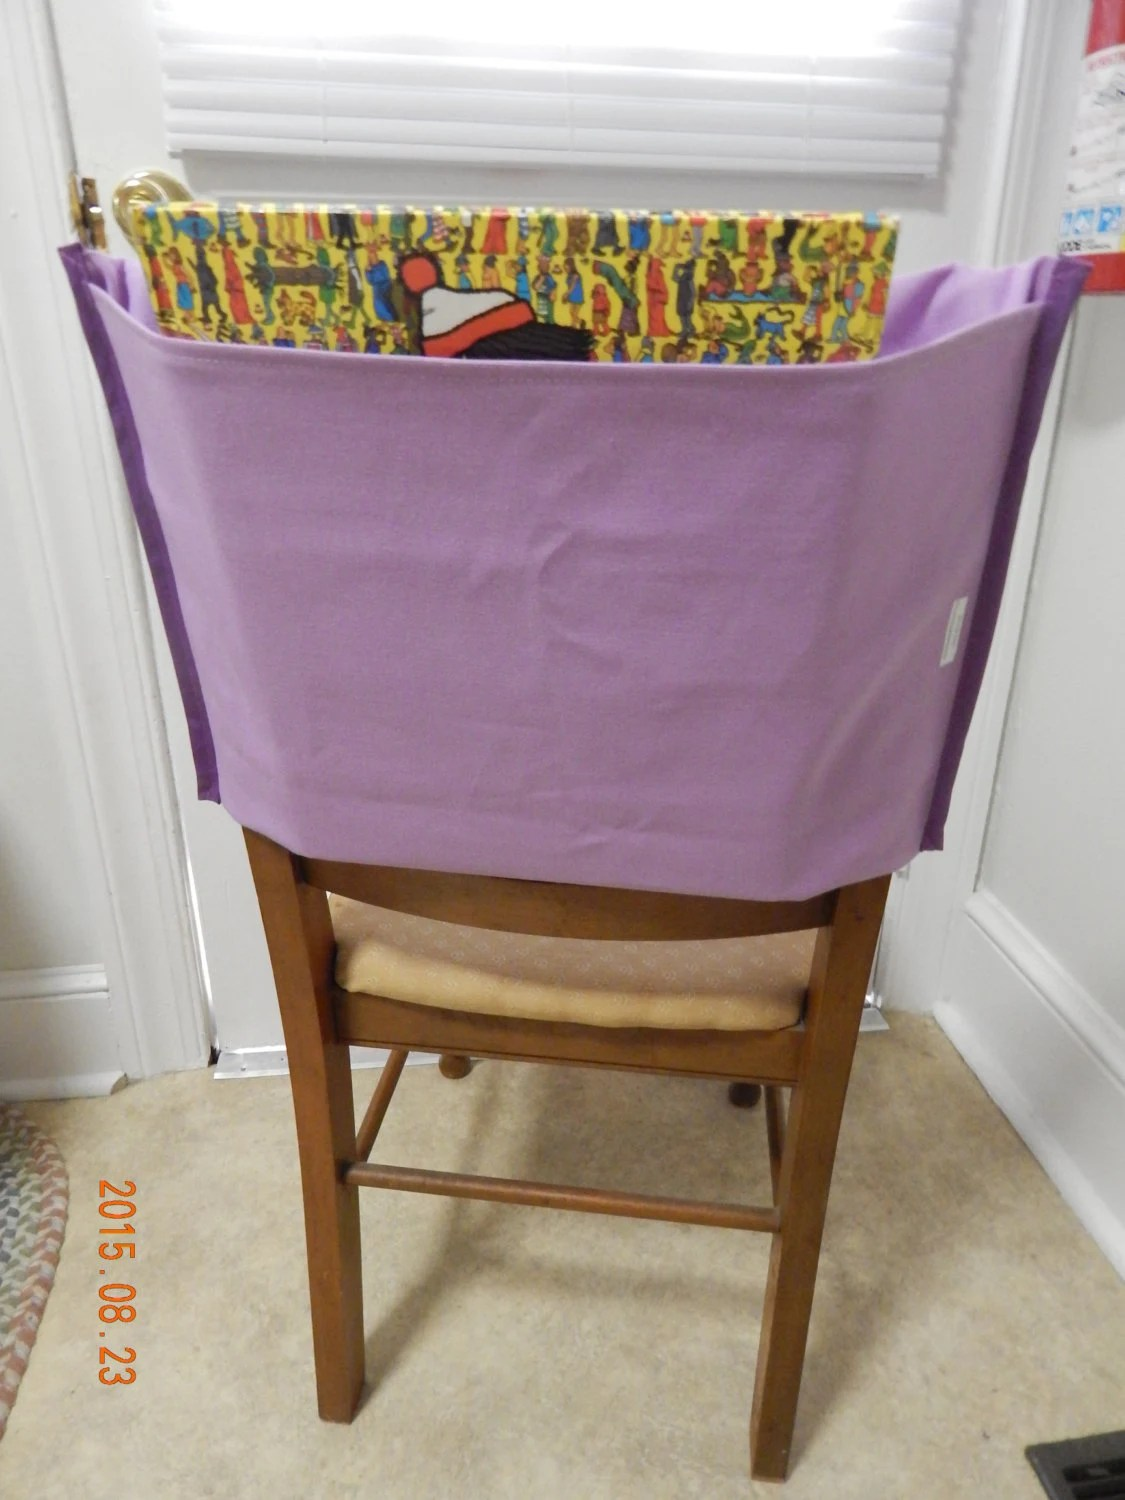 Chair Pockets For Classrooms Chair Back Pocket Lilac Classroom Organization By Sewnbynancy